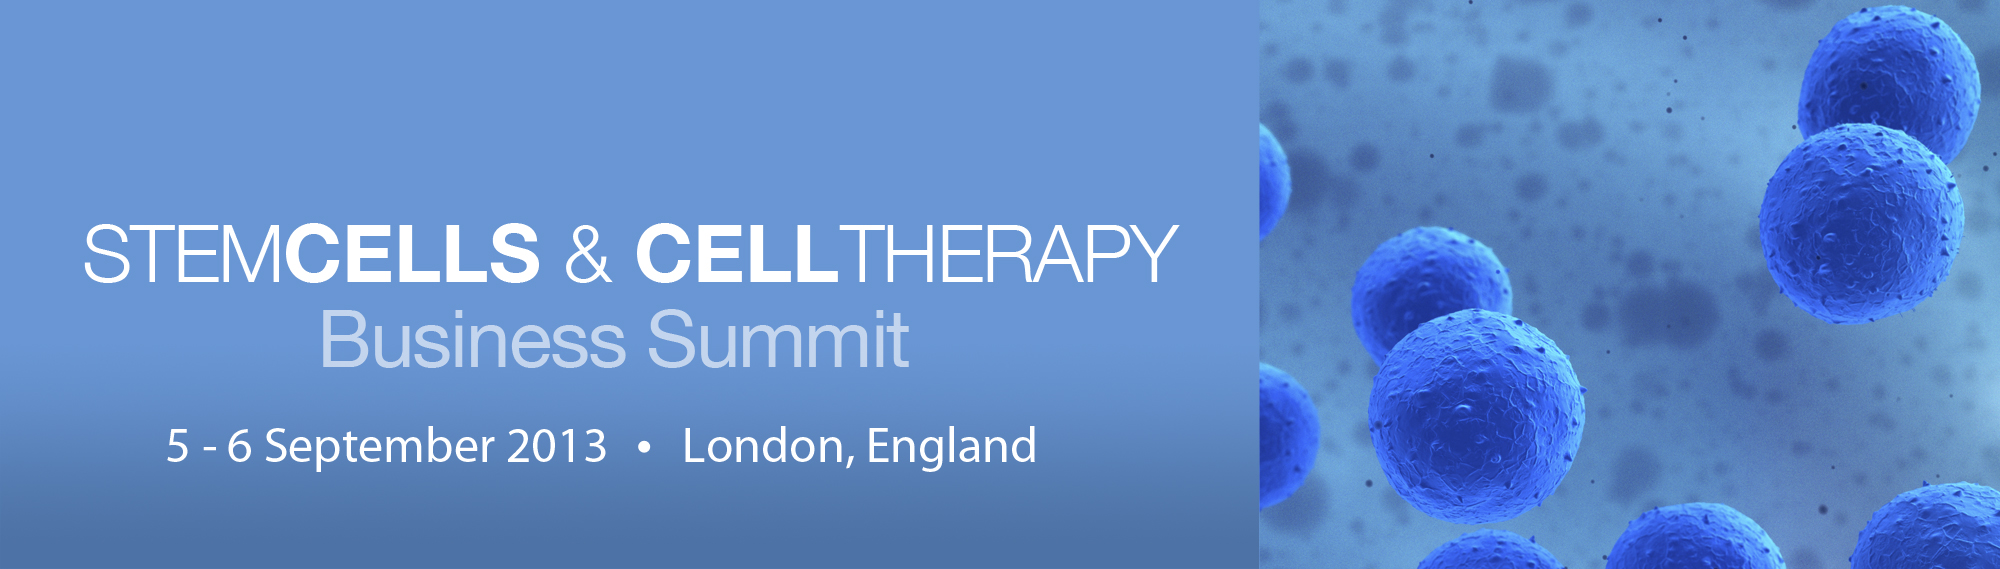 Stem Cells & Cell Therapy Summit